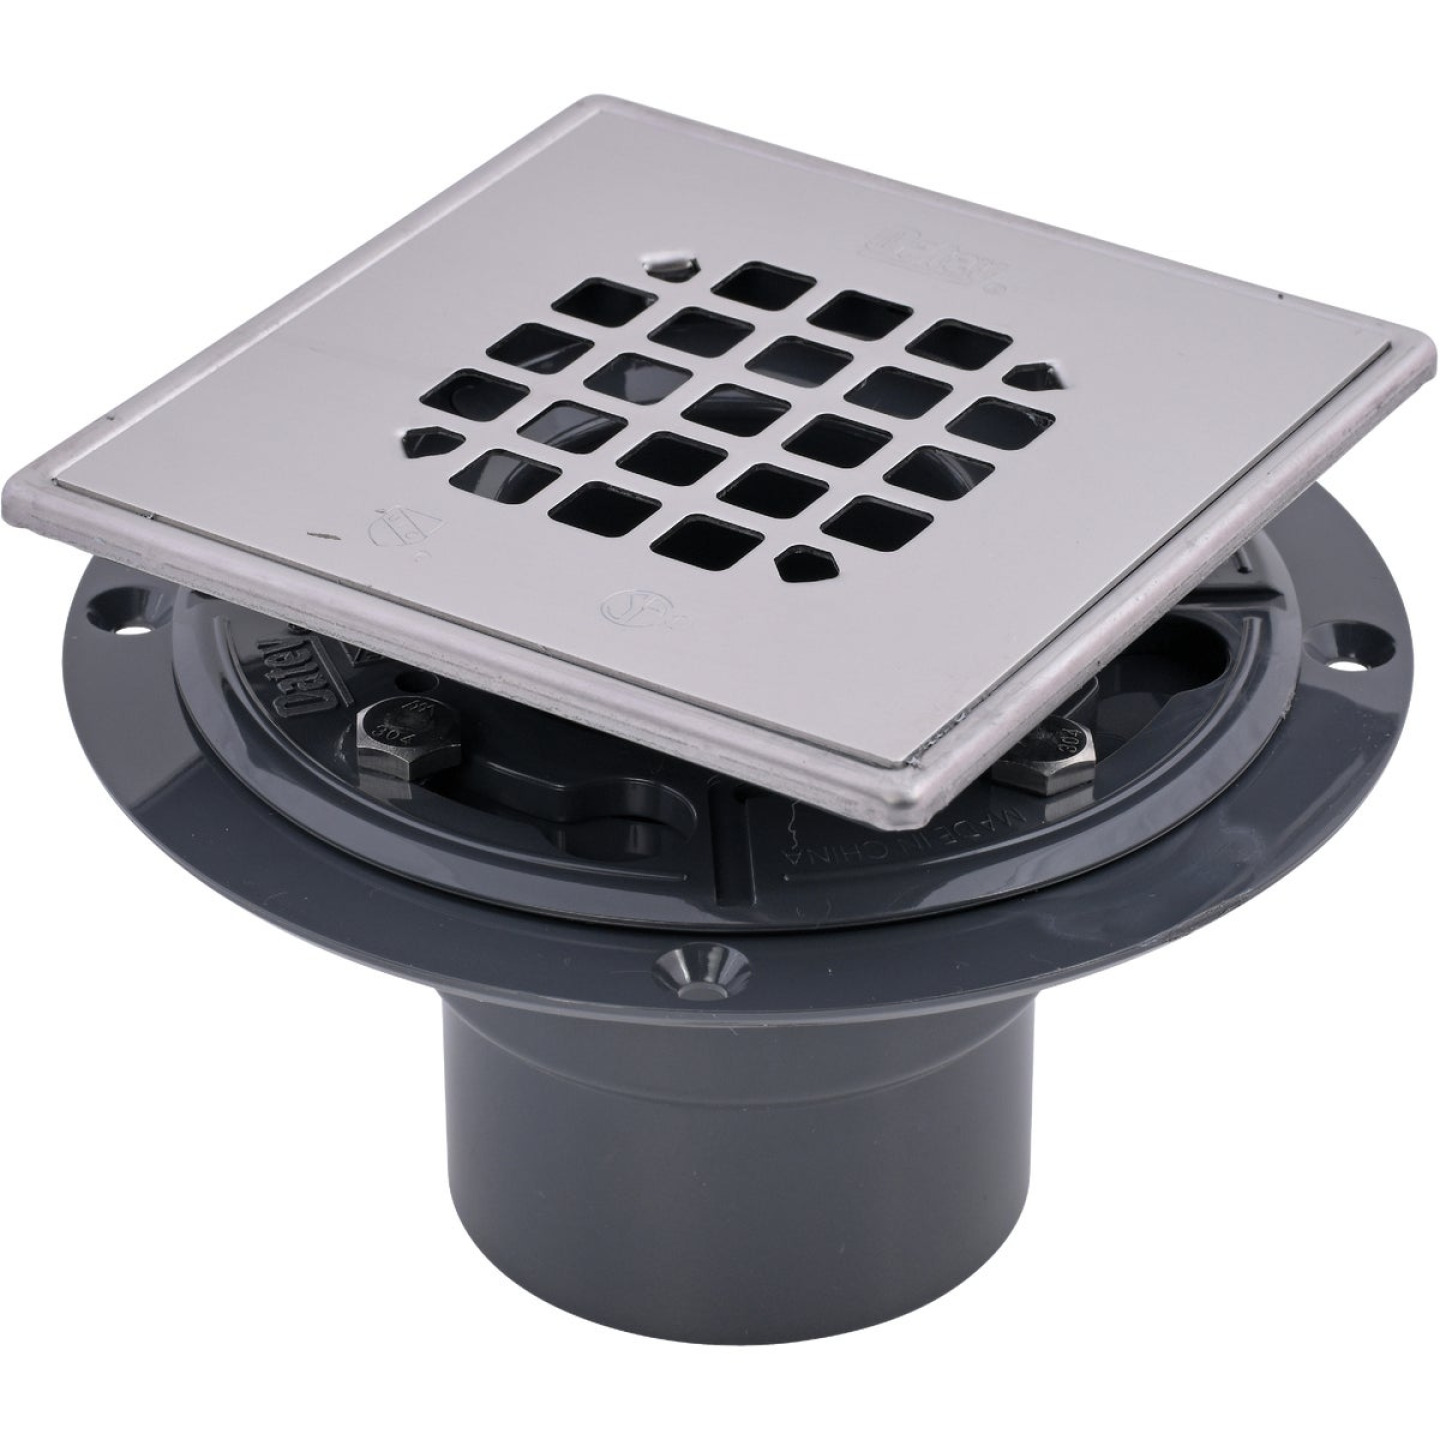 Oatey 2 In. or 3 In. PVC 130 Shower Drain for Tile Installations with 4-1/4 In. Stainless Steel Strainer Image 1